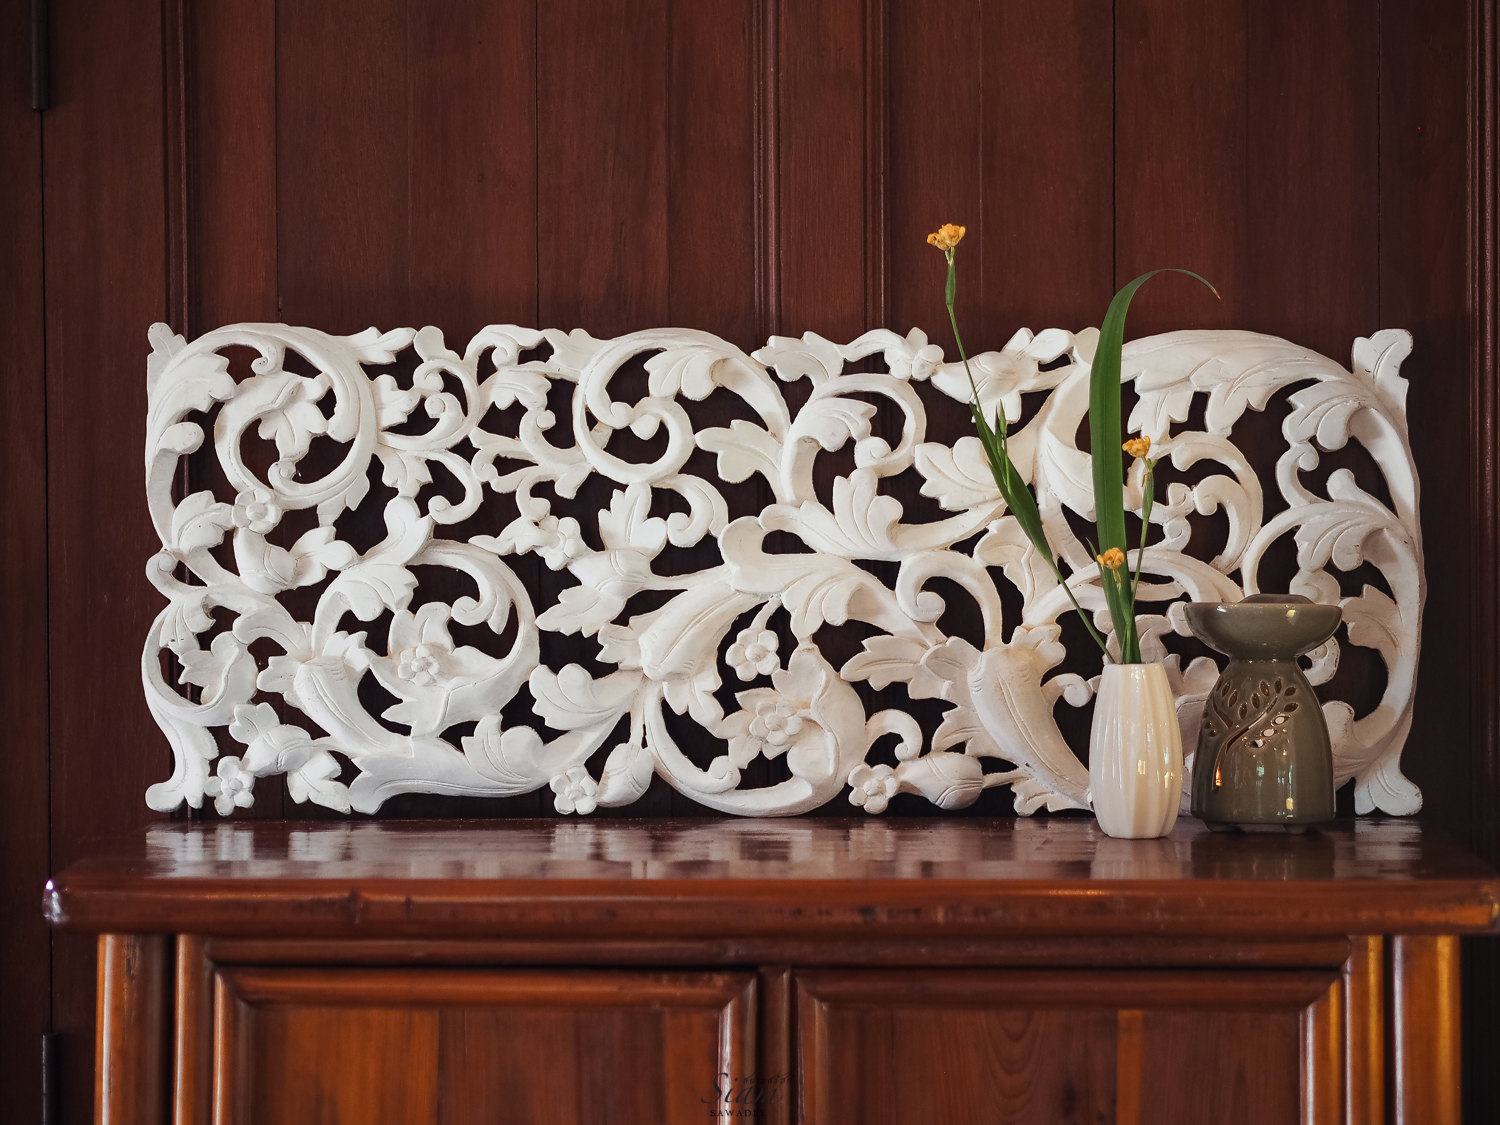 Carved Wood Wall Hanging Buy Tropical Floral Curving Wooden Carving Wall Hanging Online